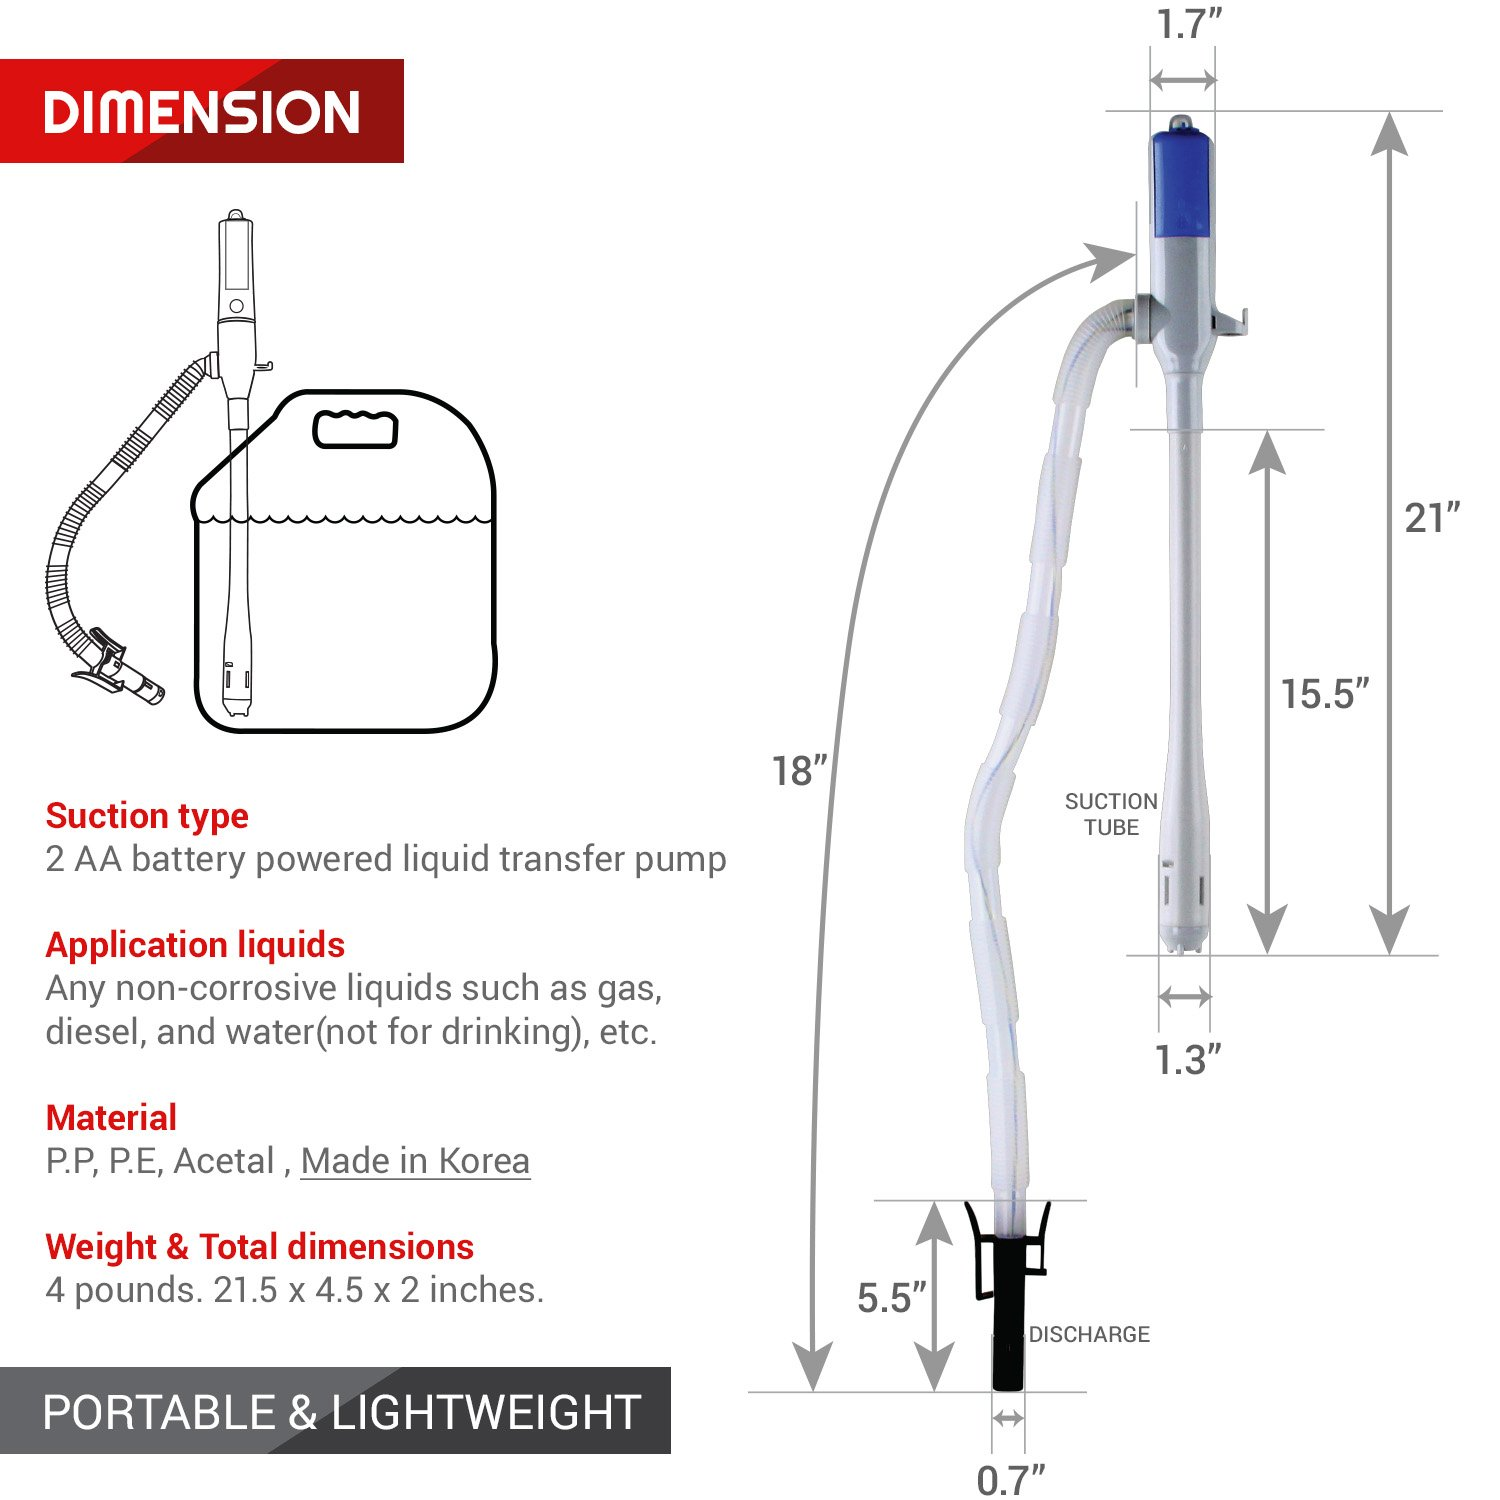 TERA PUMP Portable Power Water/Fuel Battery Pumps with AutoStop by TERA PUMP (Image #3)